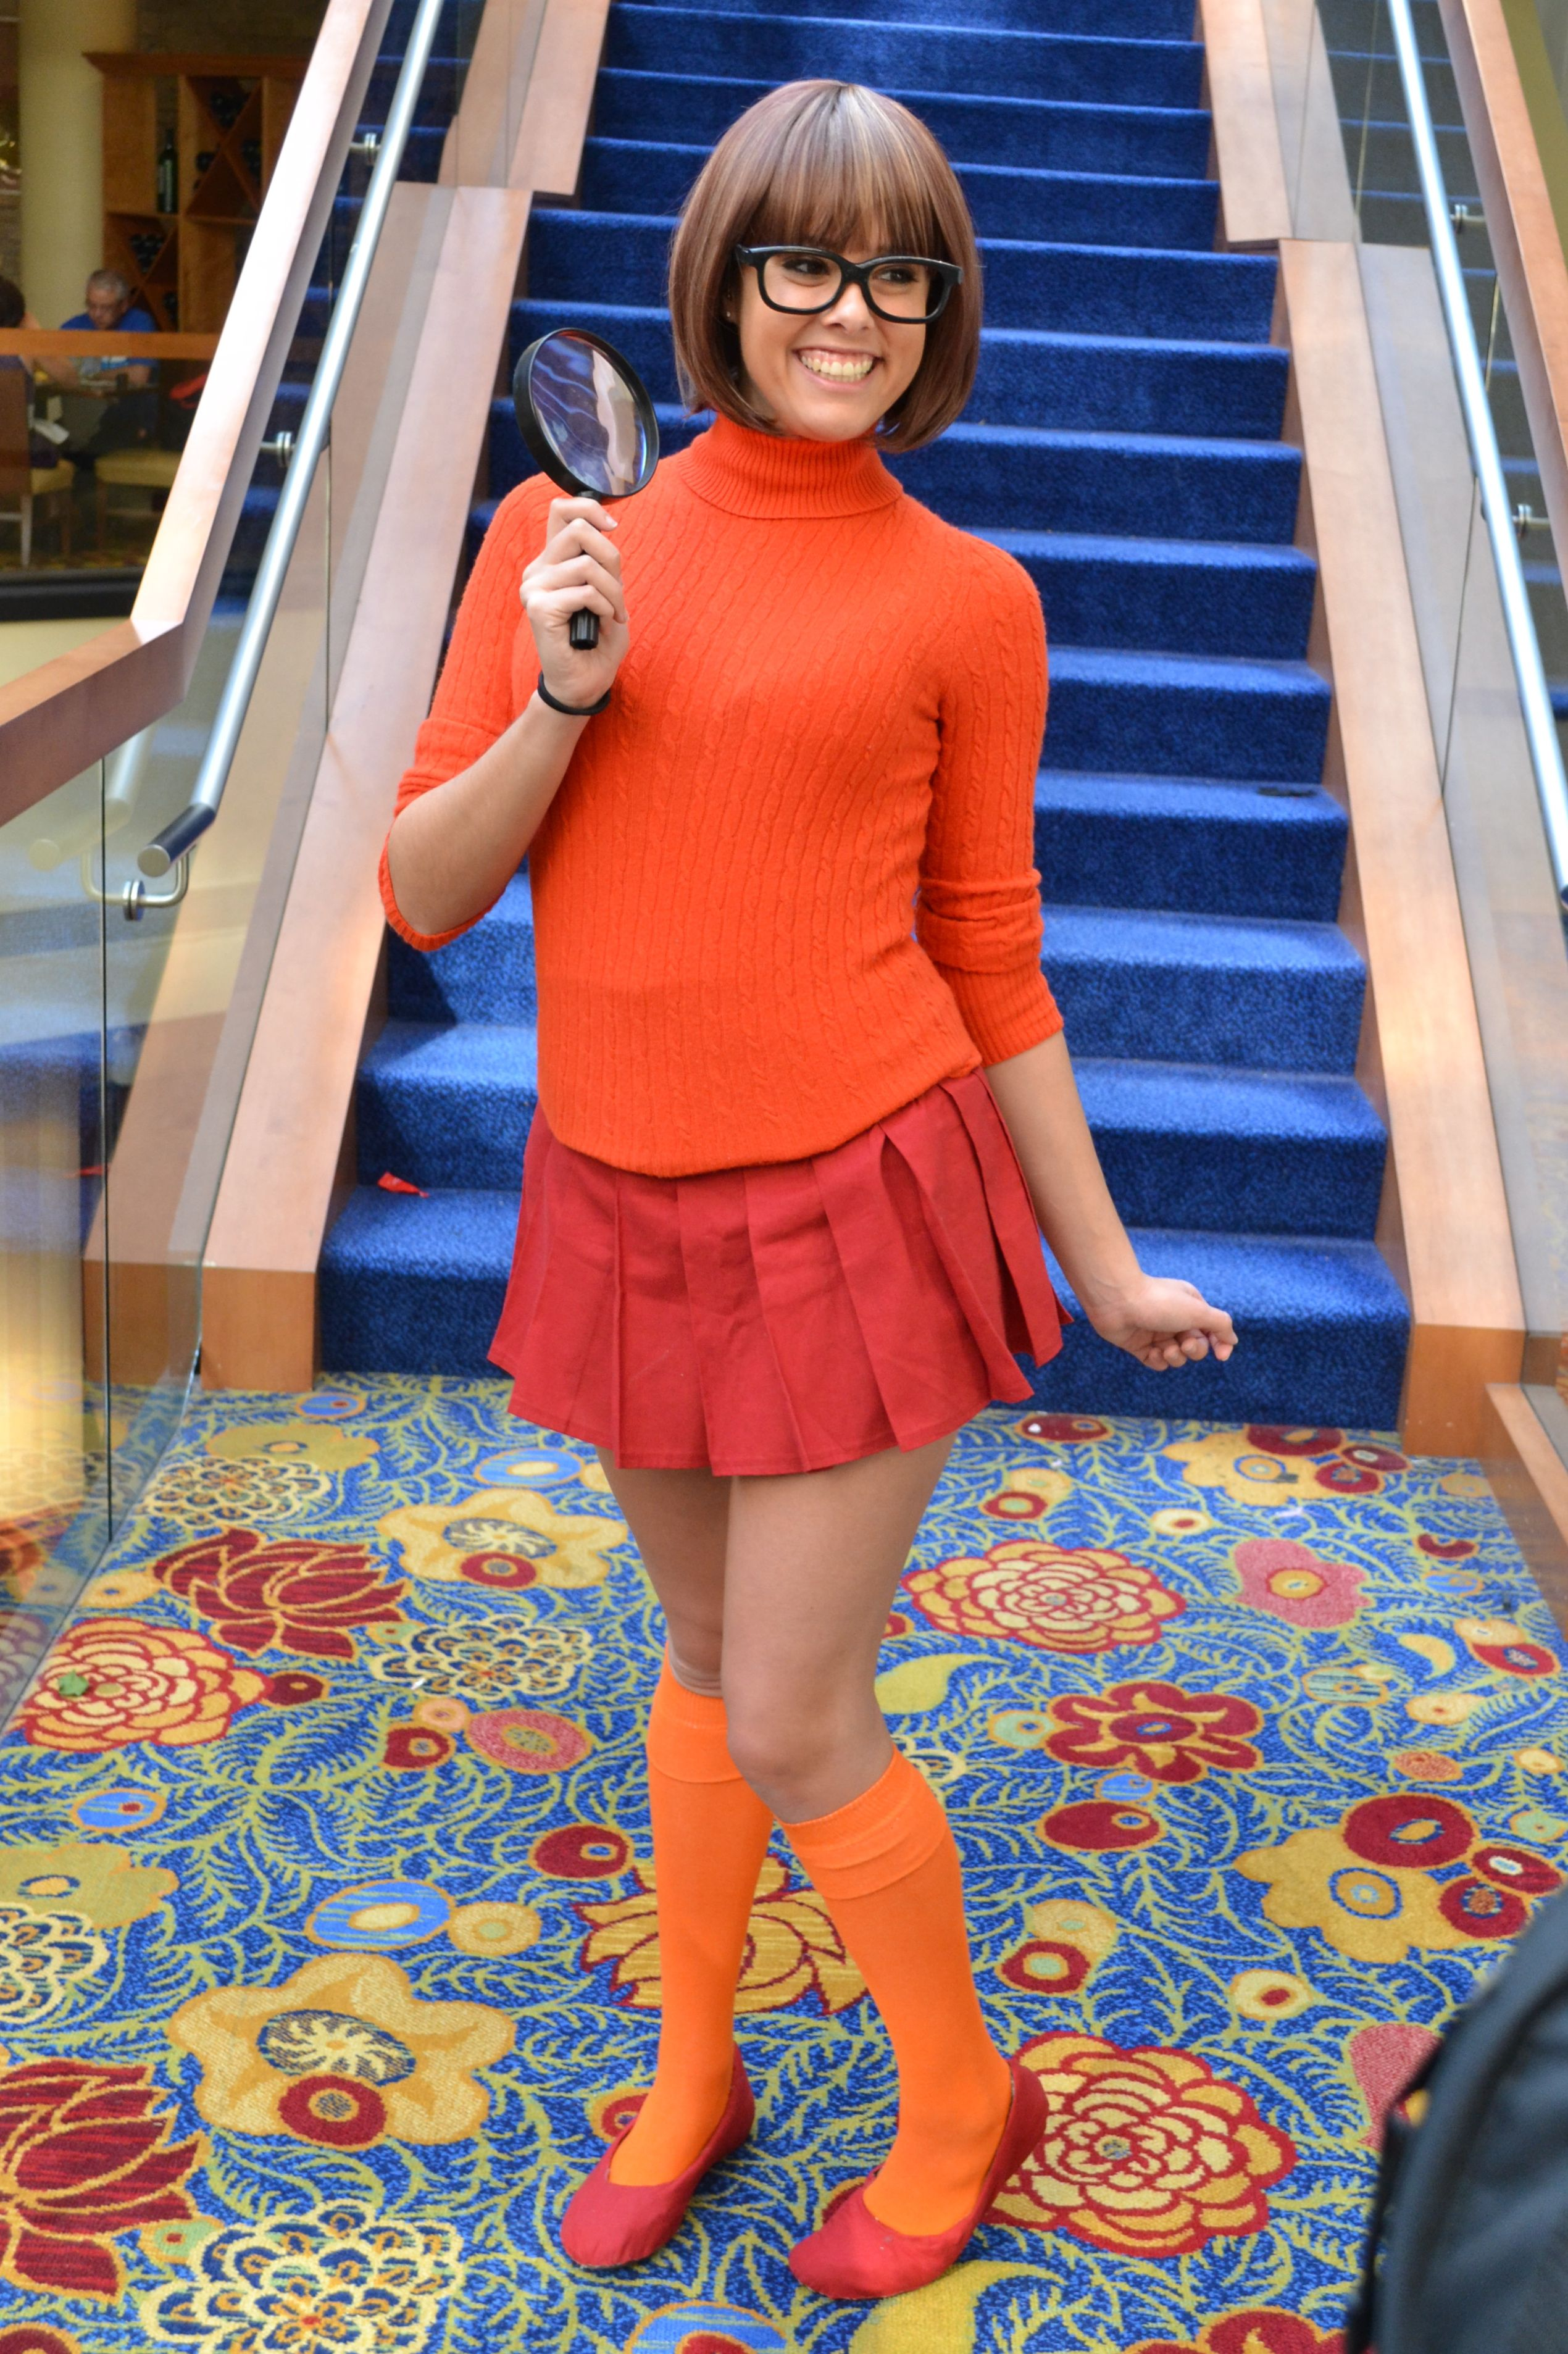 Sexy Velma cosplay | Costumes and Cosplay | Pinterest ...